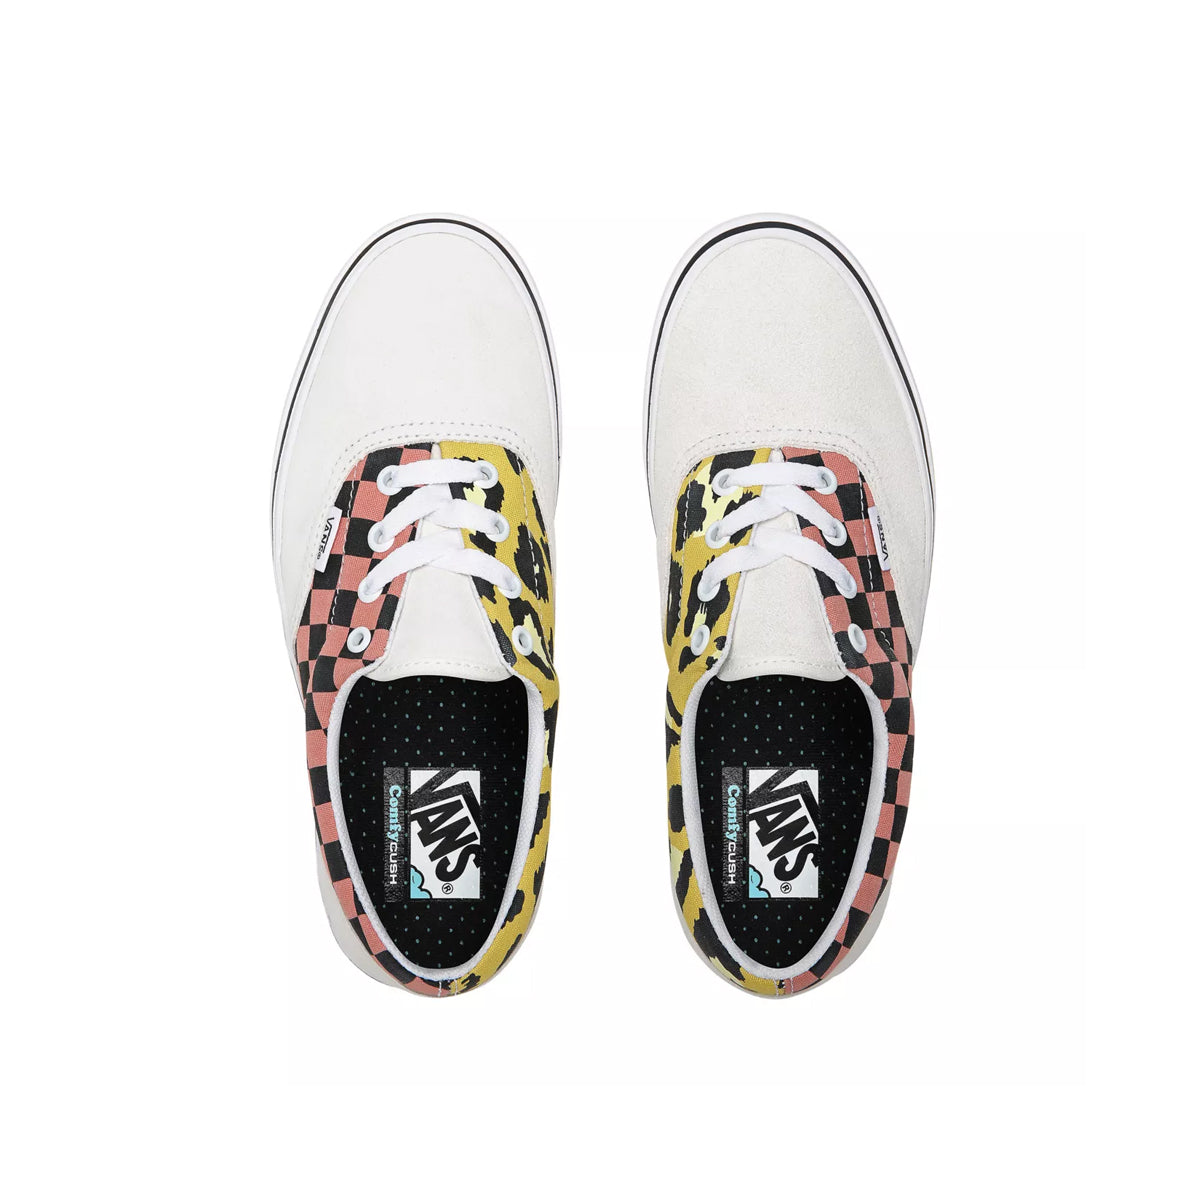 VANS COMFYCUSH ERA (MIXED MEDIA) WHITE/MULTI UNISEX SNEAKERS VN0A3WM91PC